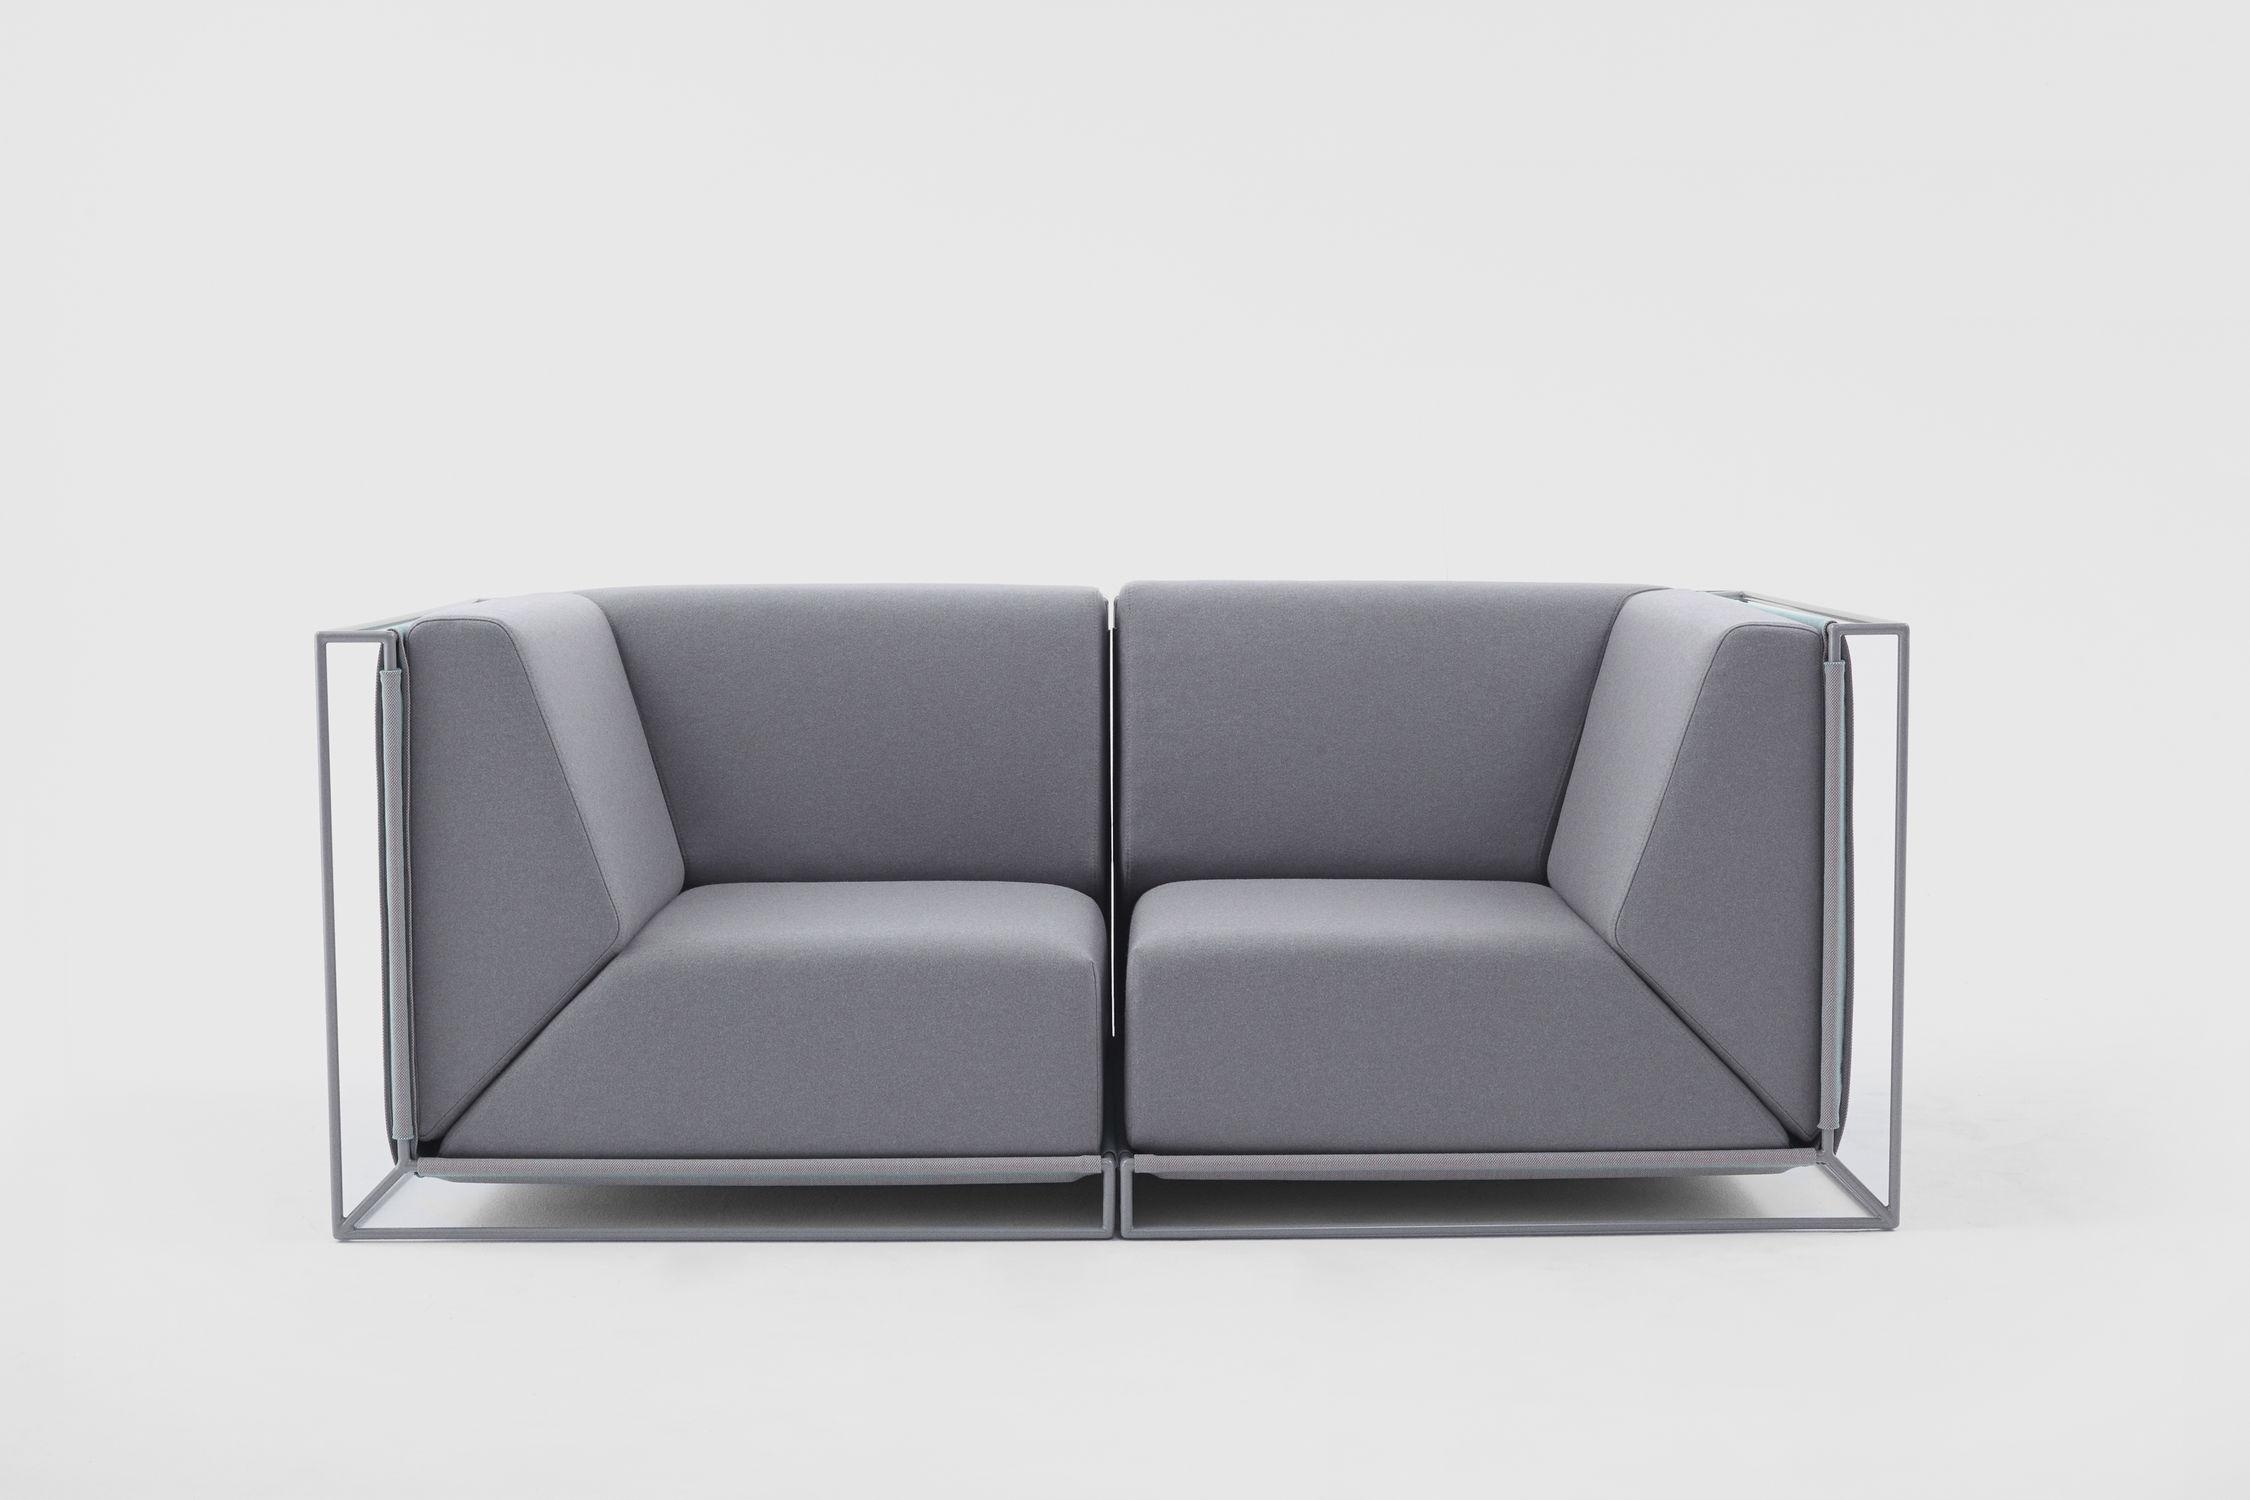 Modular Sofa / Contemporary / Fabric /philippe Nigro Intended For Floating Sofas (Image 16 of 20)